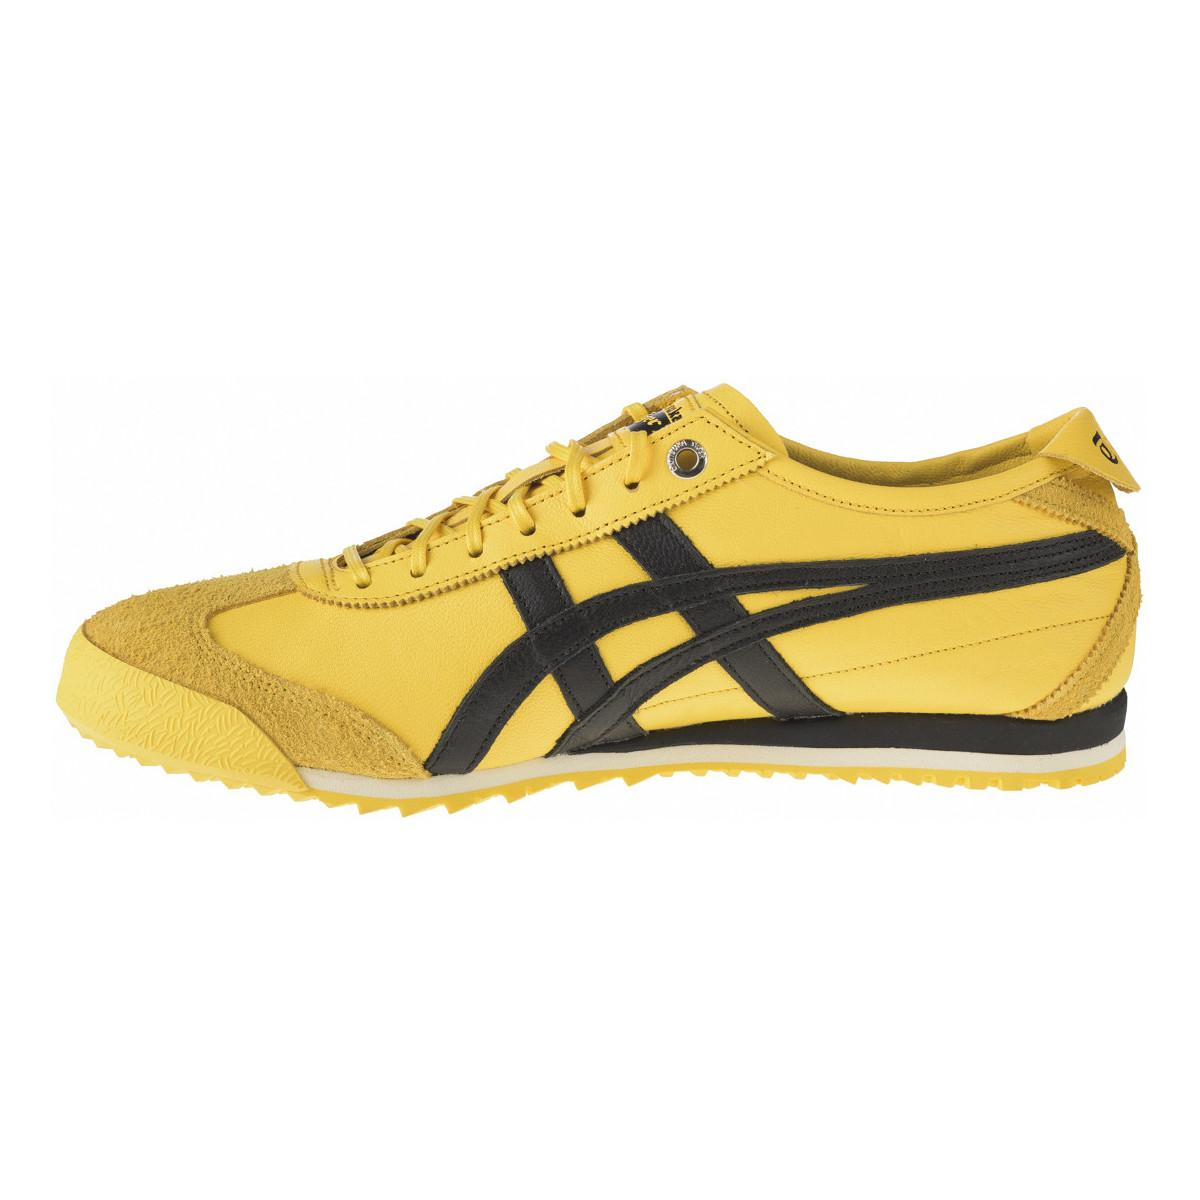 Mexico 66 SD Chaussures Onitsuka Tiger en coloris Jaune - Lyst